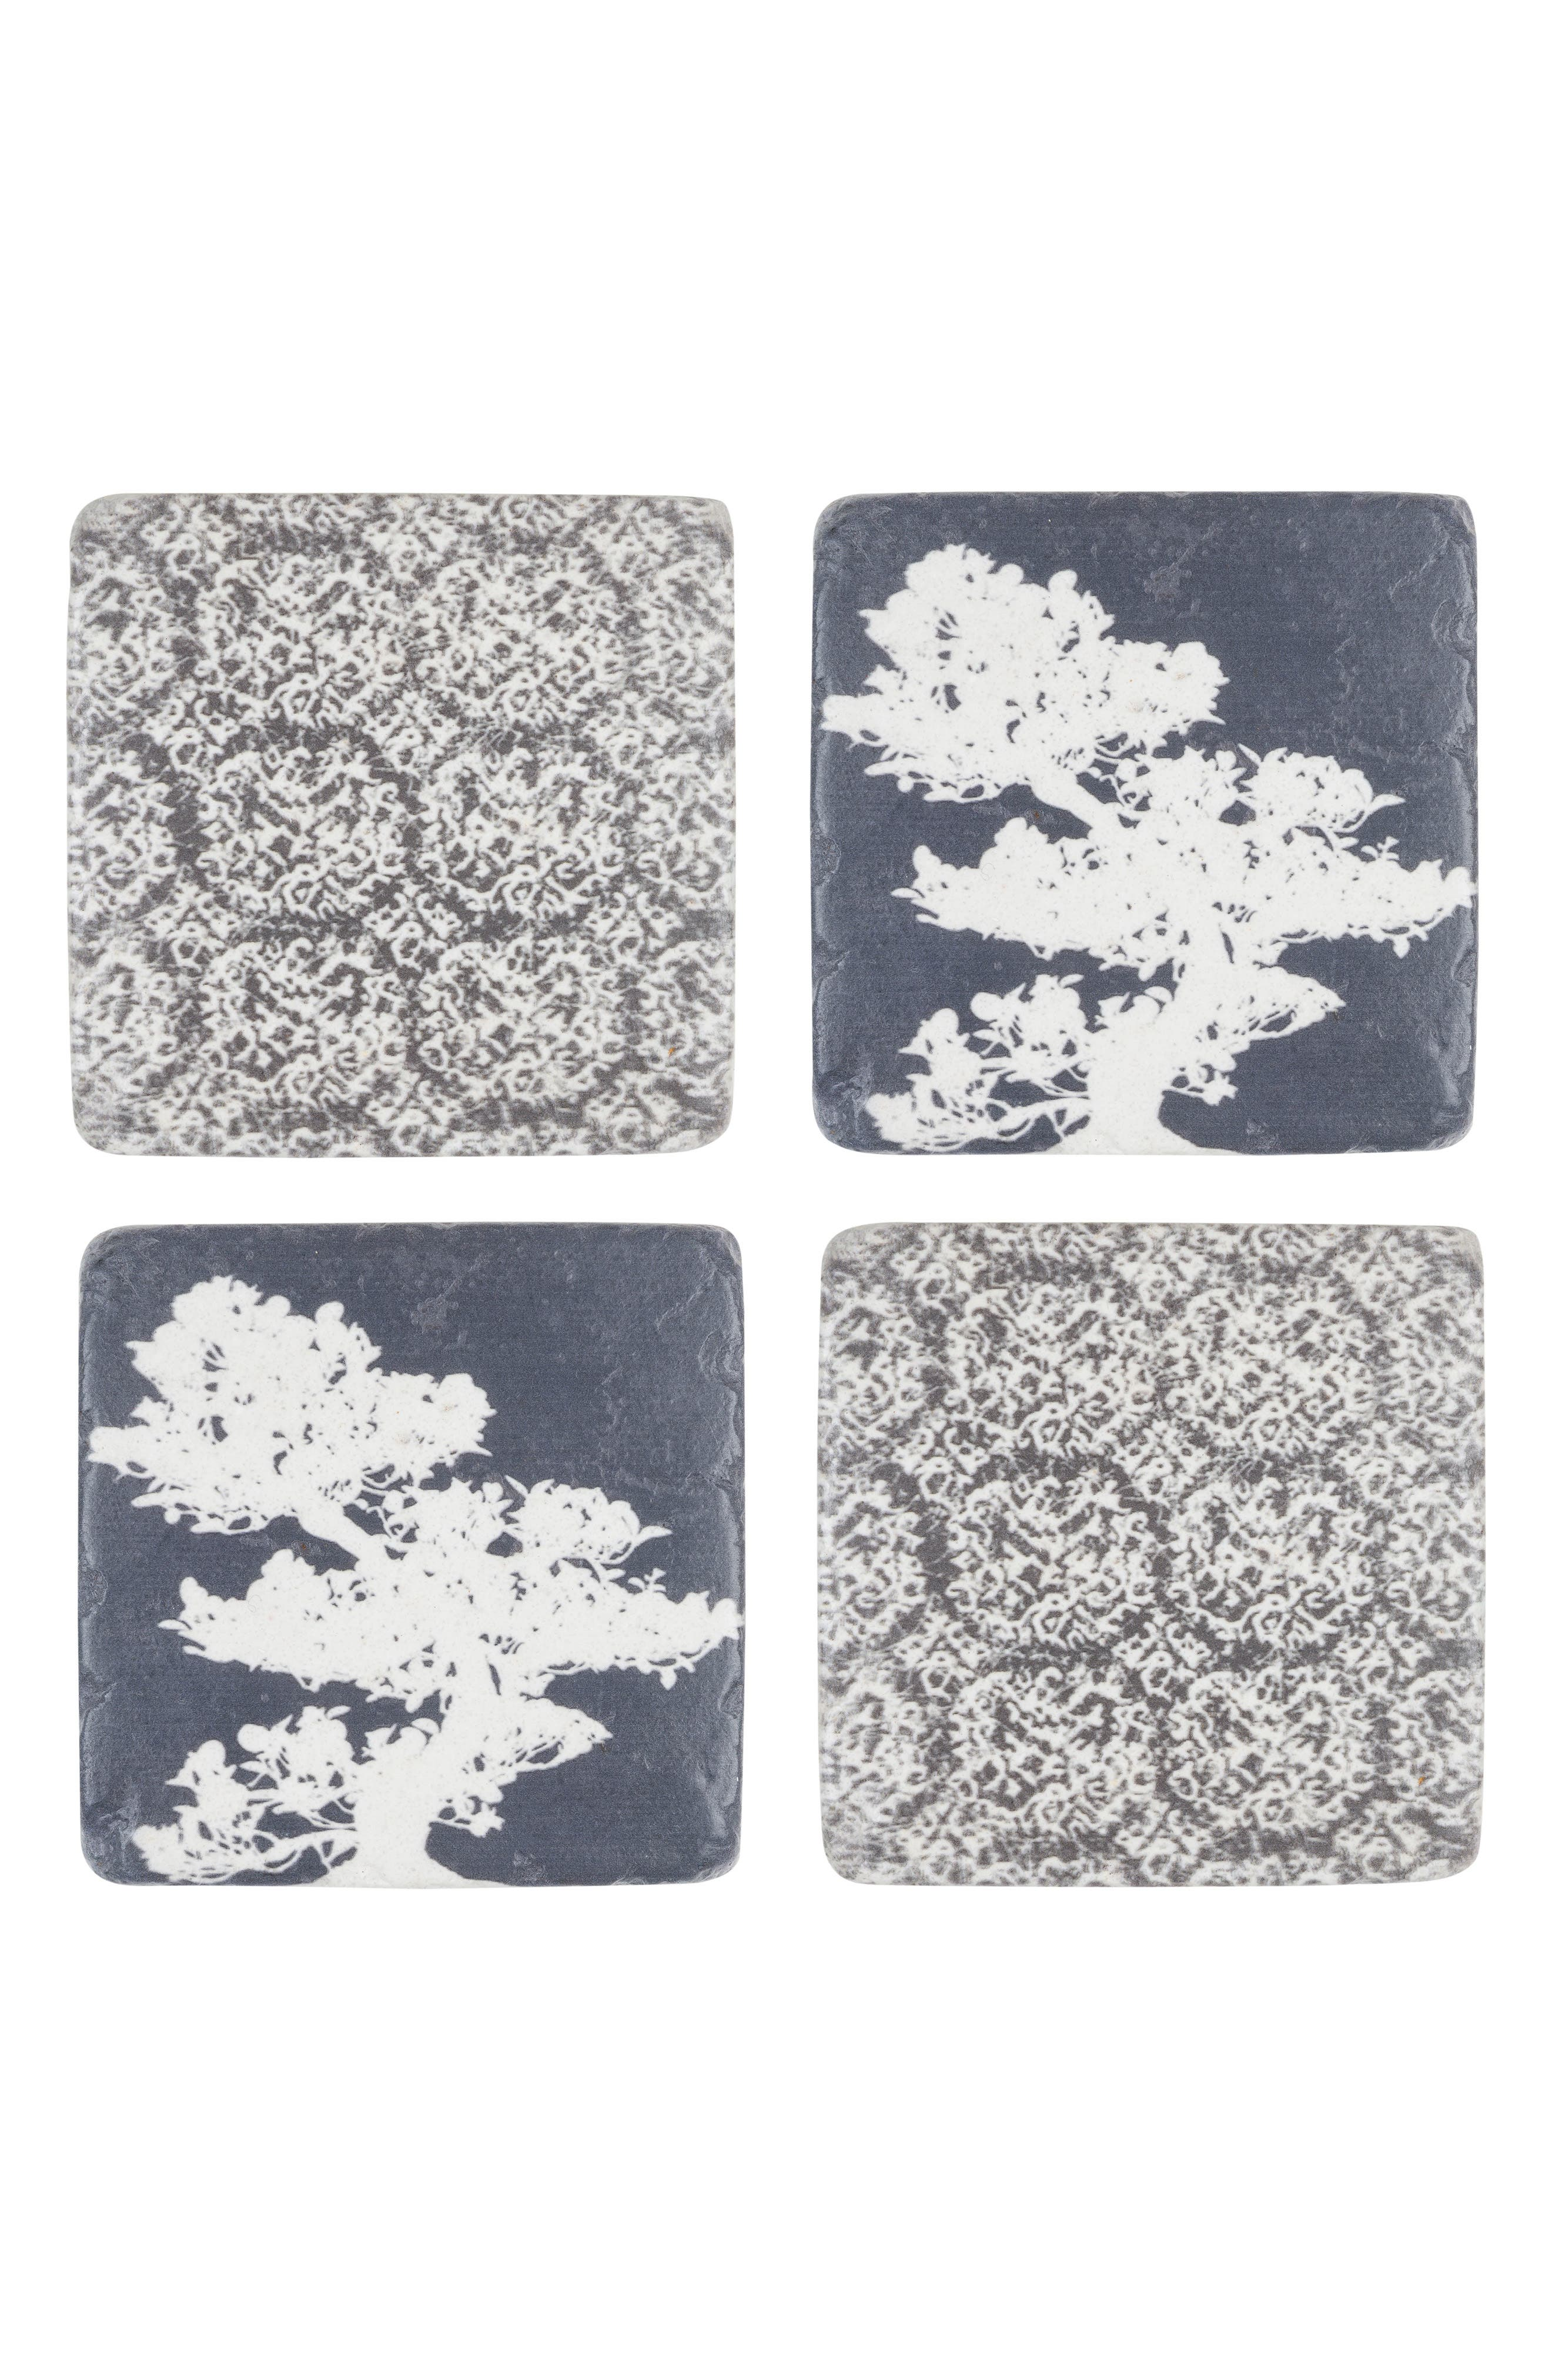 Bonsai Set of 4 Resin Coasters,                             Main thumbnail 1, color,                             Blue/ White/ Grey